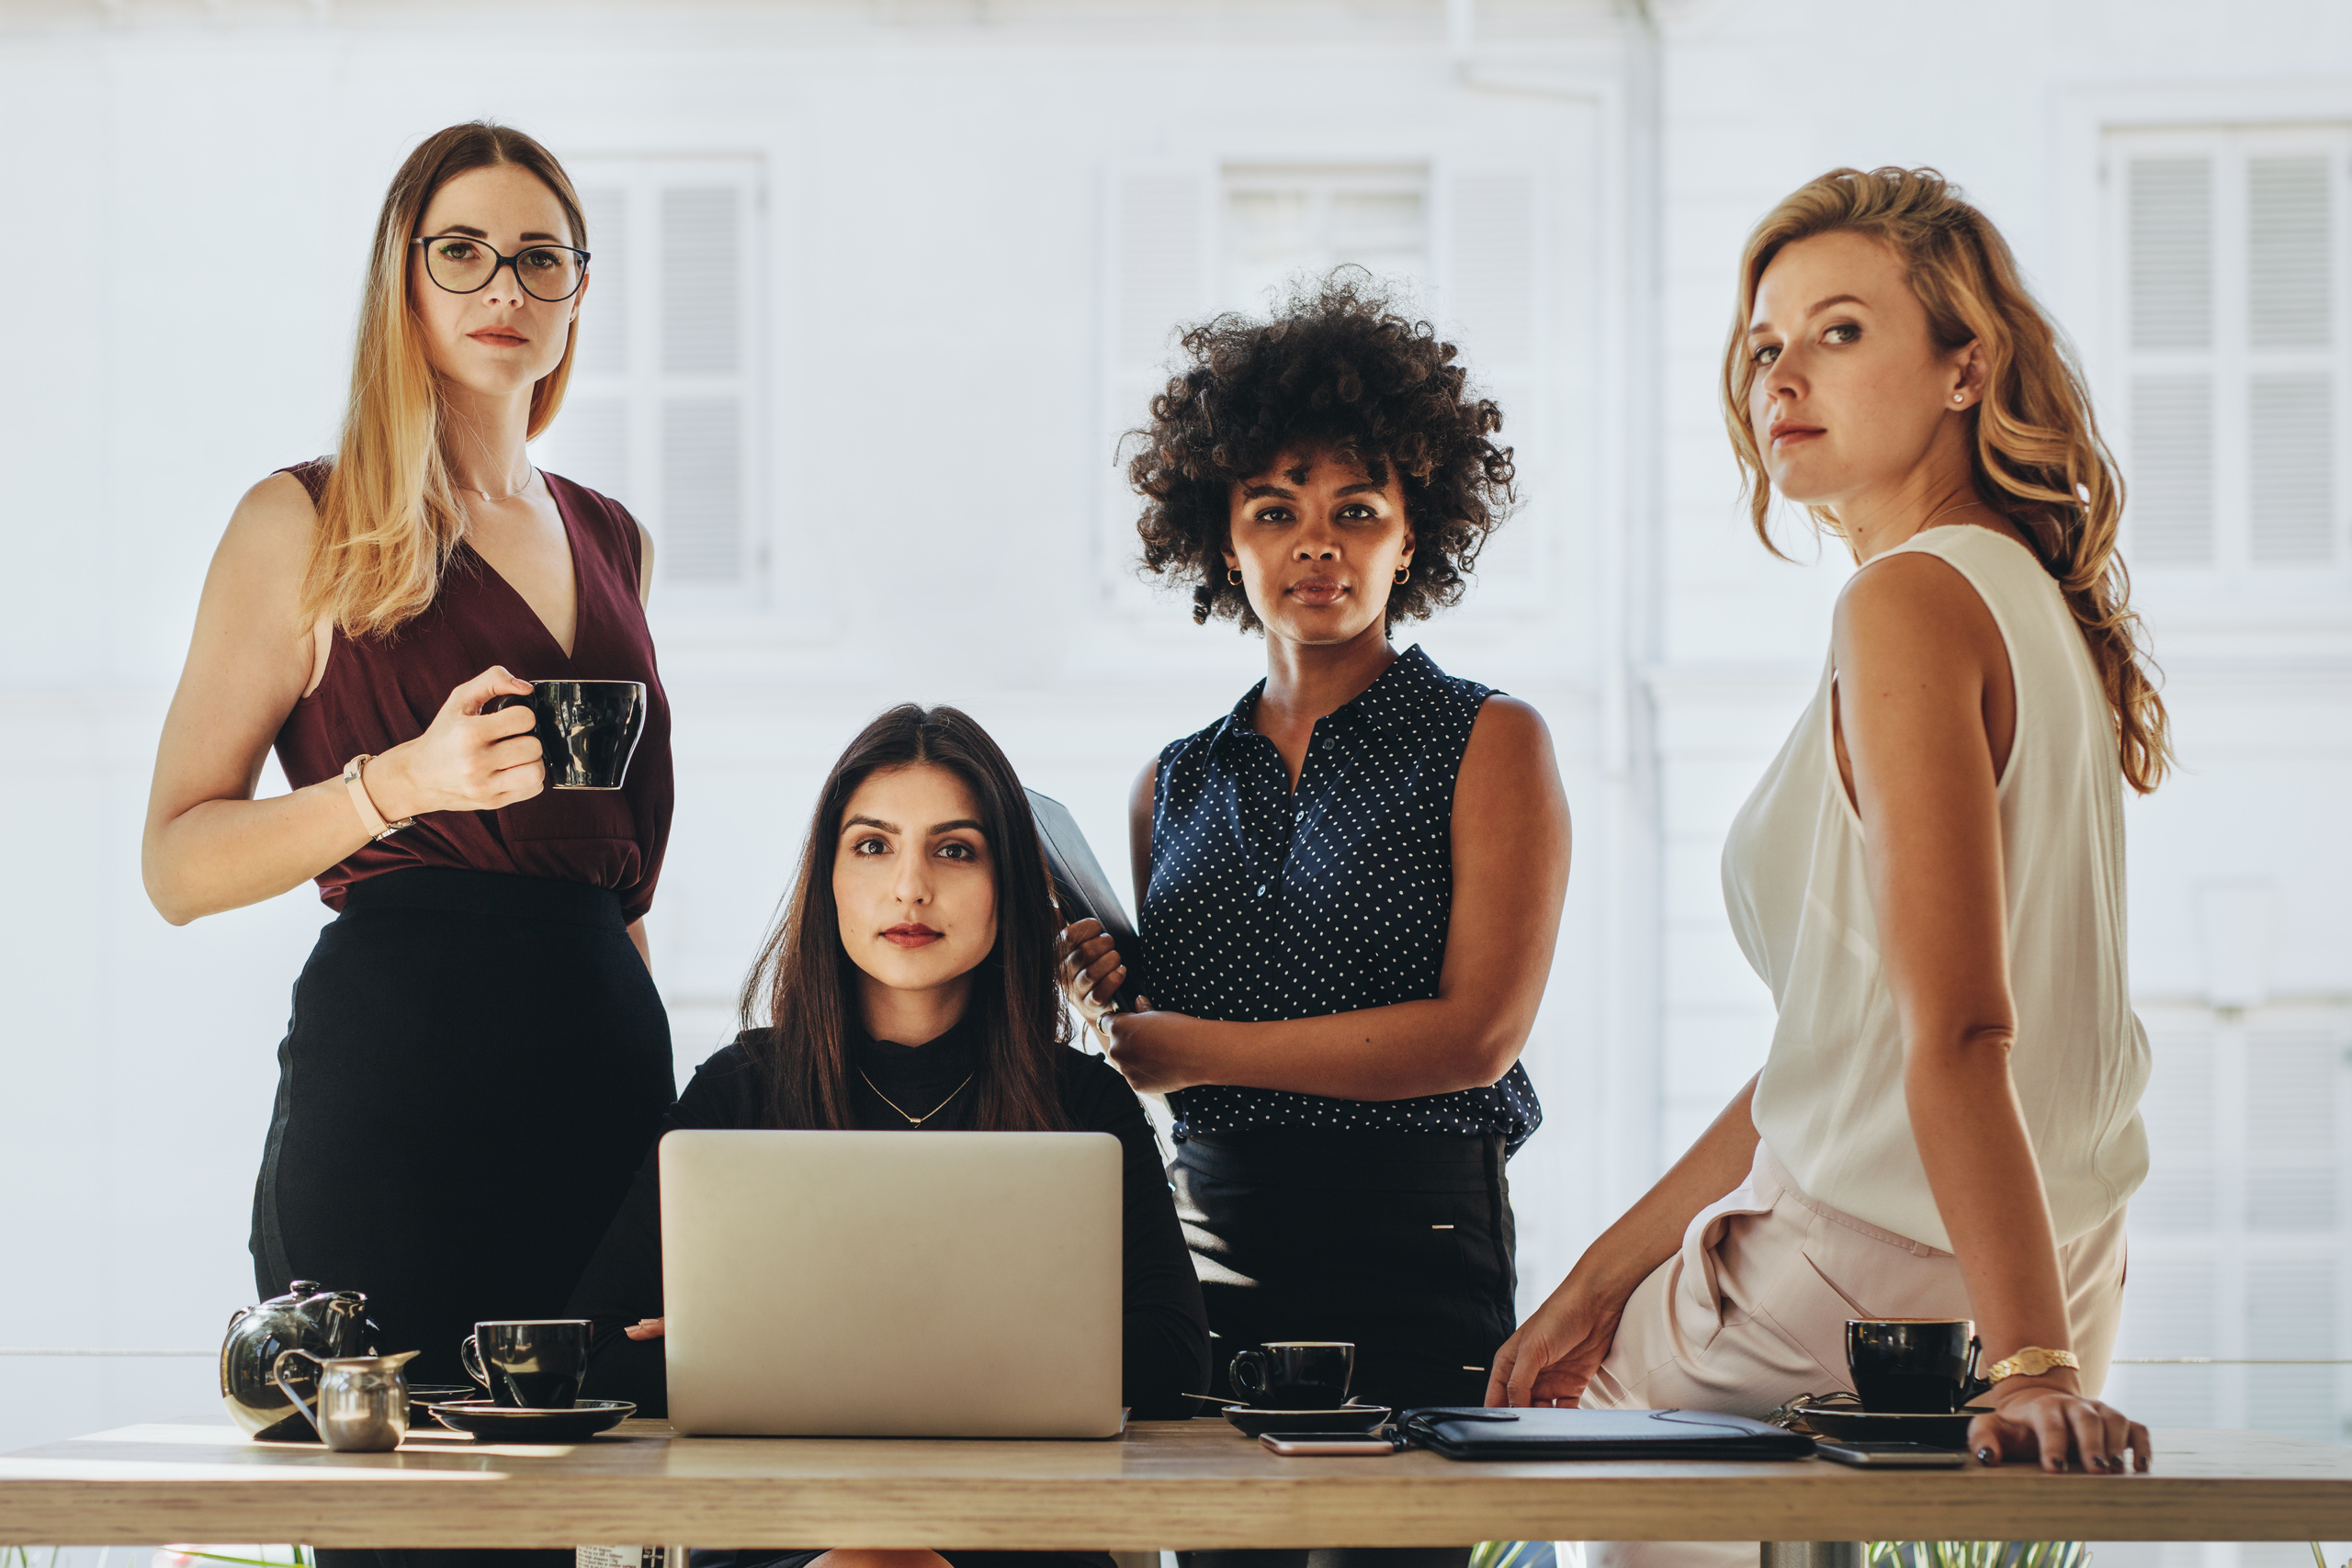 Group,Of,Multiracial,Businesswomen,In,Casuals,Together,At,Office,Desk